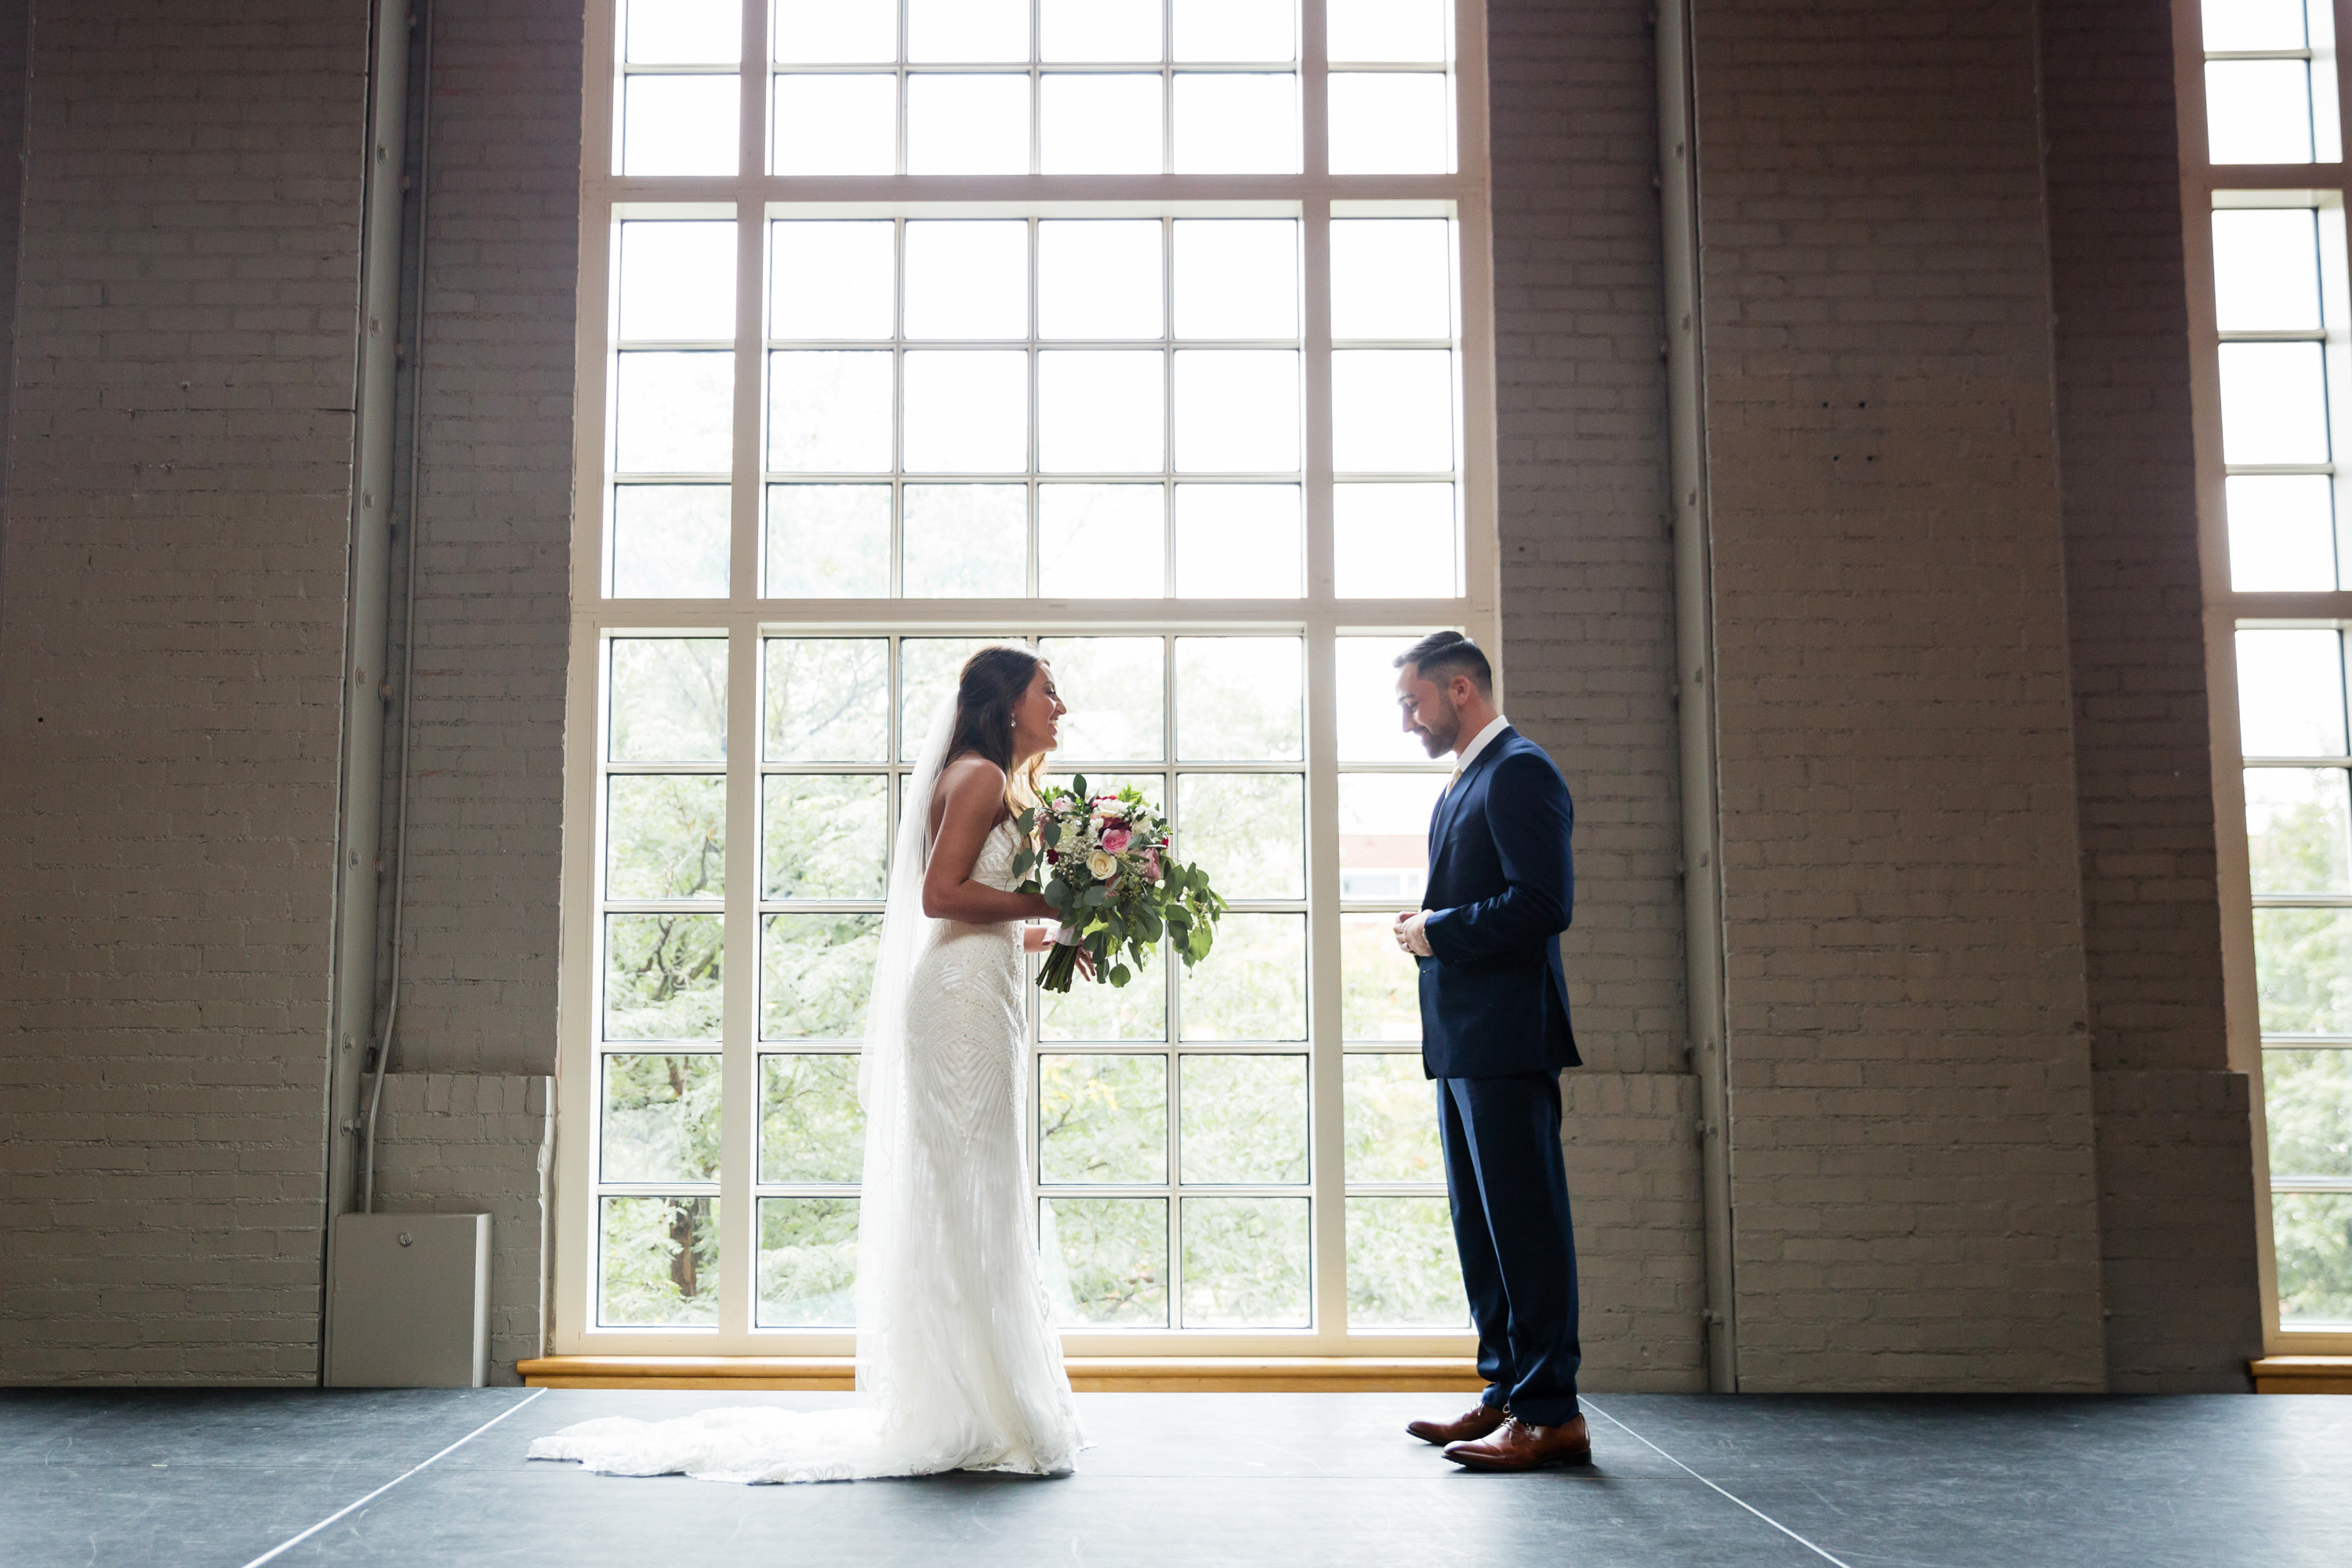 rachael_schirano_photography_wedding-3